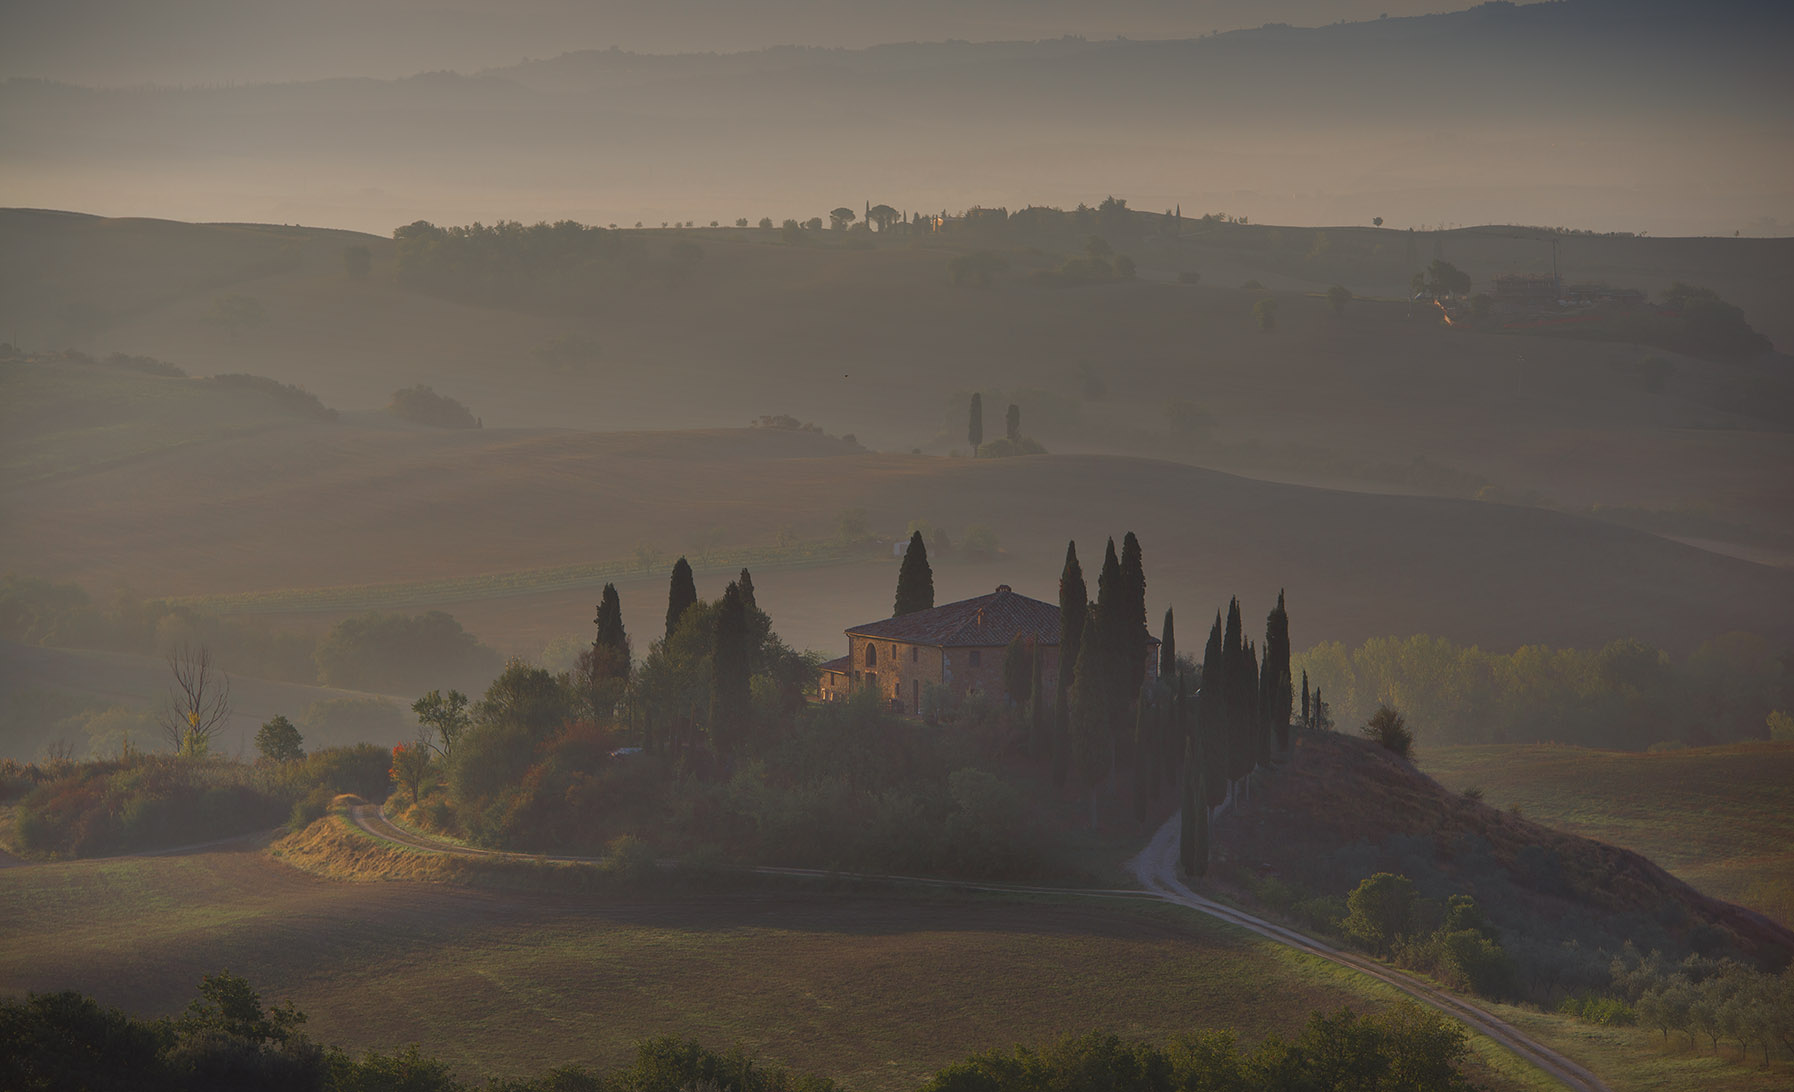 Glen Il Belvedere Val D'orcia